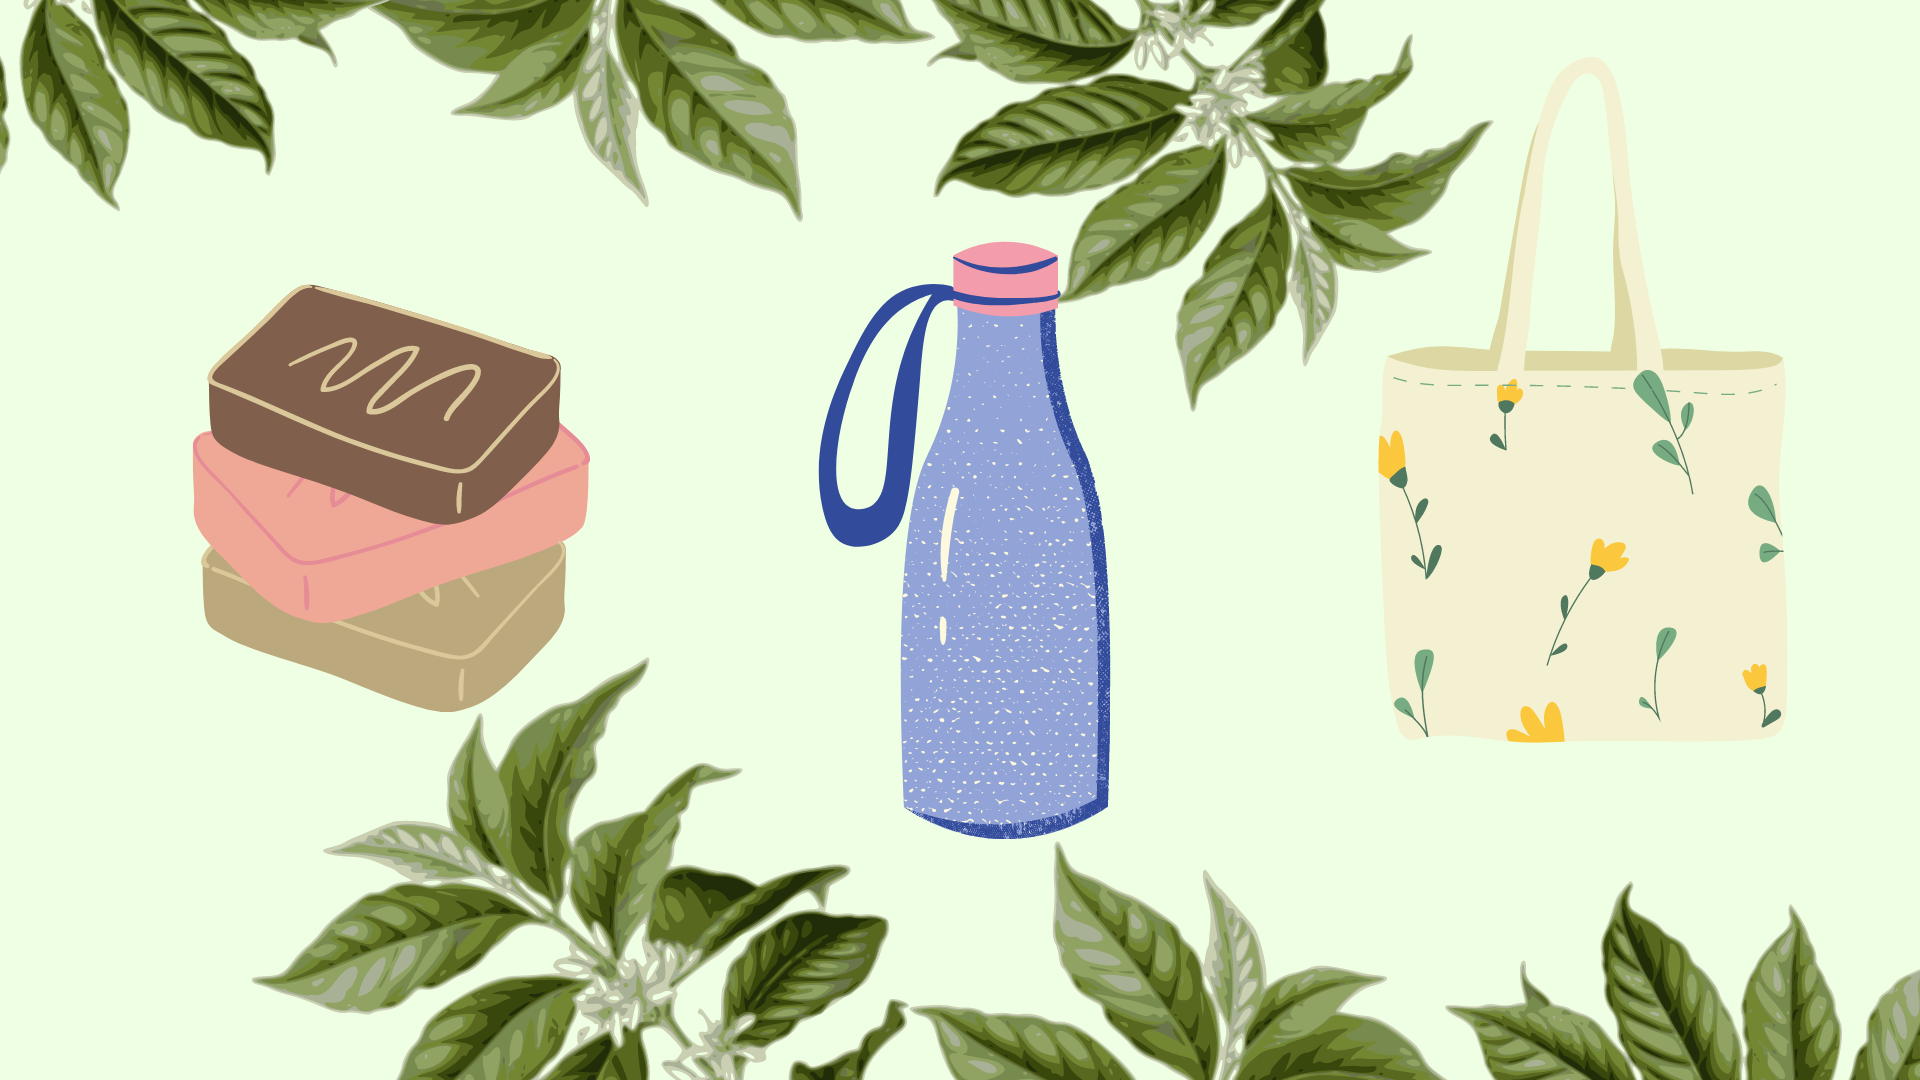 Green background with drawings of bars of soap, water bottle, and bag